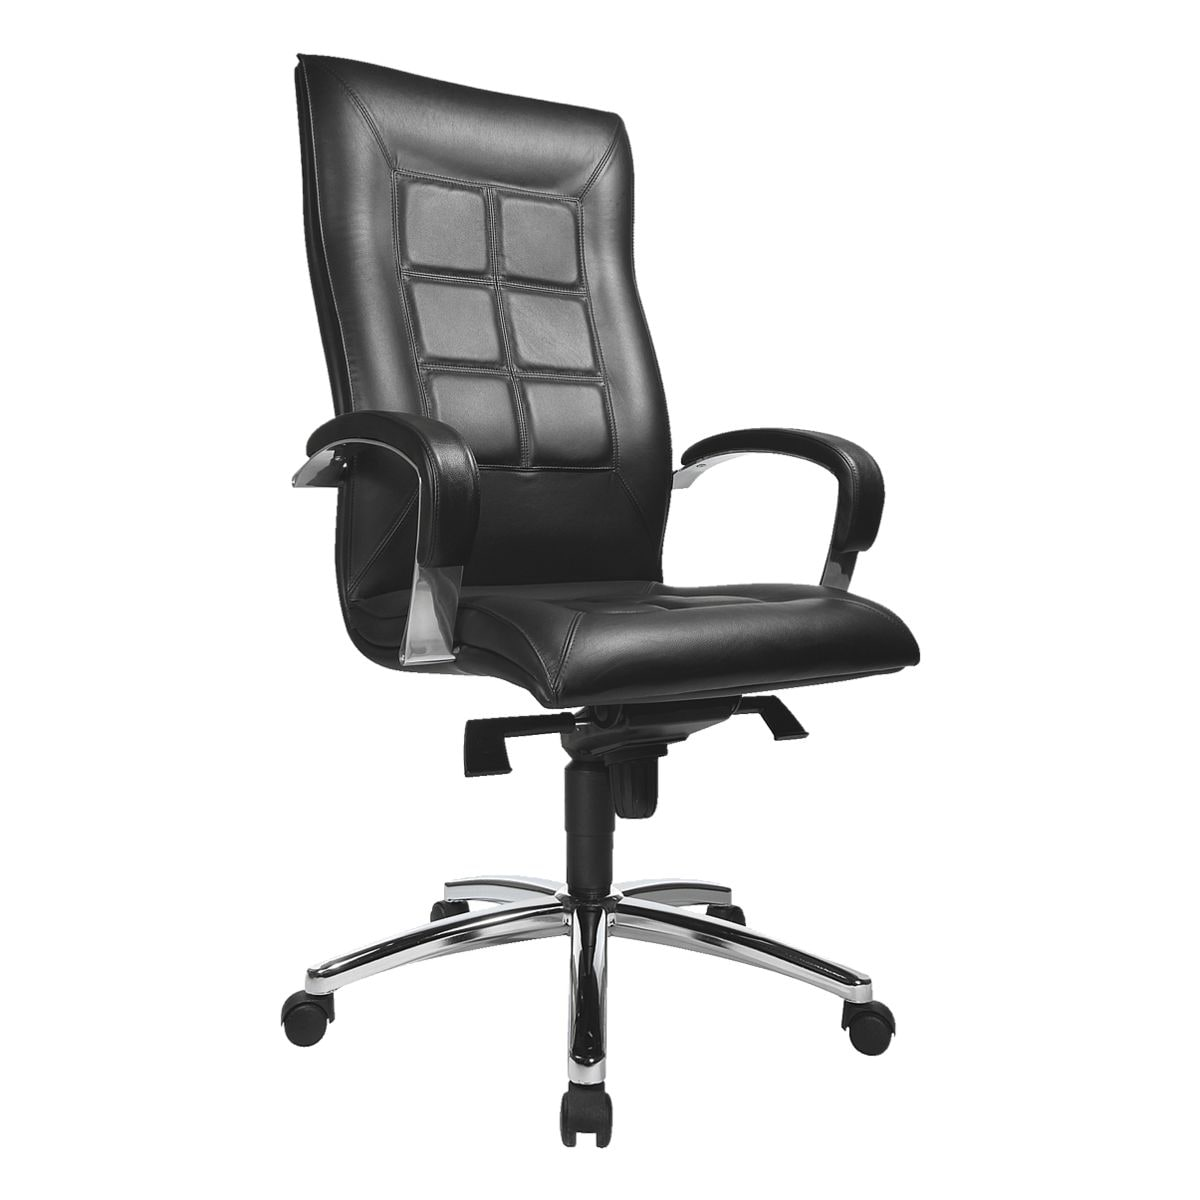 leder chefsessel topstar chairman 45 mit armlehnen bei otto office g nstig kaufen. Black Bedroom Furniture Sets. Home Design Ideas